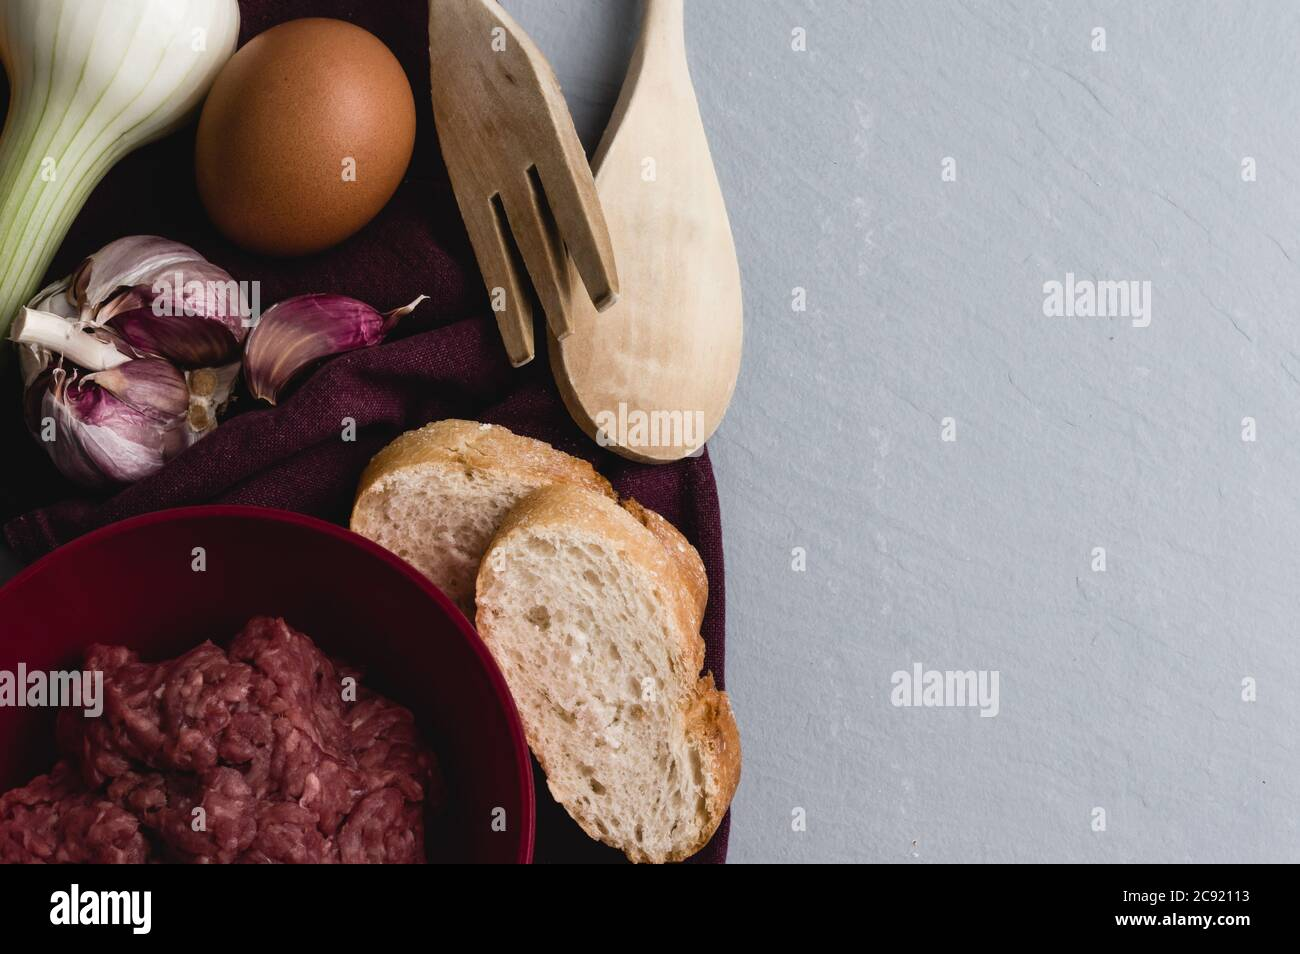 Closeup shot of ingredients and tools for preparing meatballs on a white kitchen table Stock Photo